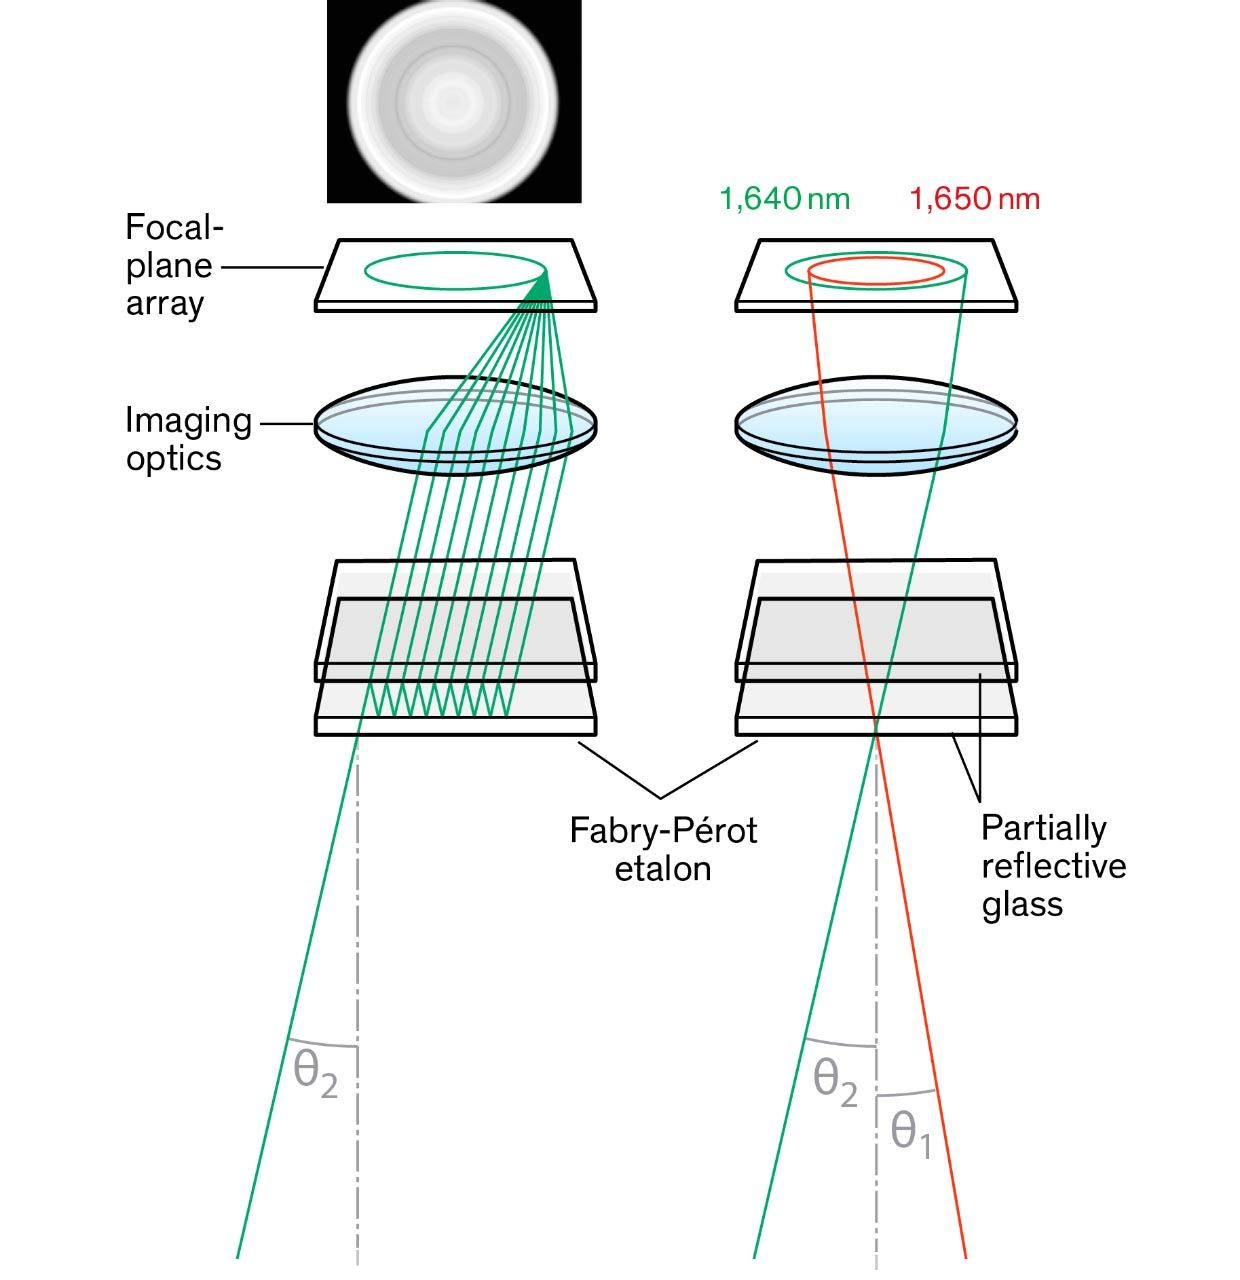 The etalon is made up of two partially mirrored surfaces [bottom] held micrometers apart. A portion of the light passes through both surfaces; the rest reflects within the mirrored cavity before it passes through. If the light is of the right wavelength and enters at a particular angle, it will constructively interfere with itself [left]. The result is an angle-dependent wavelength filter [right].